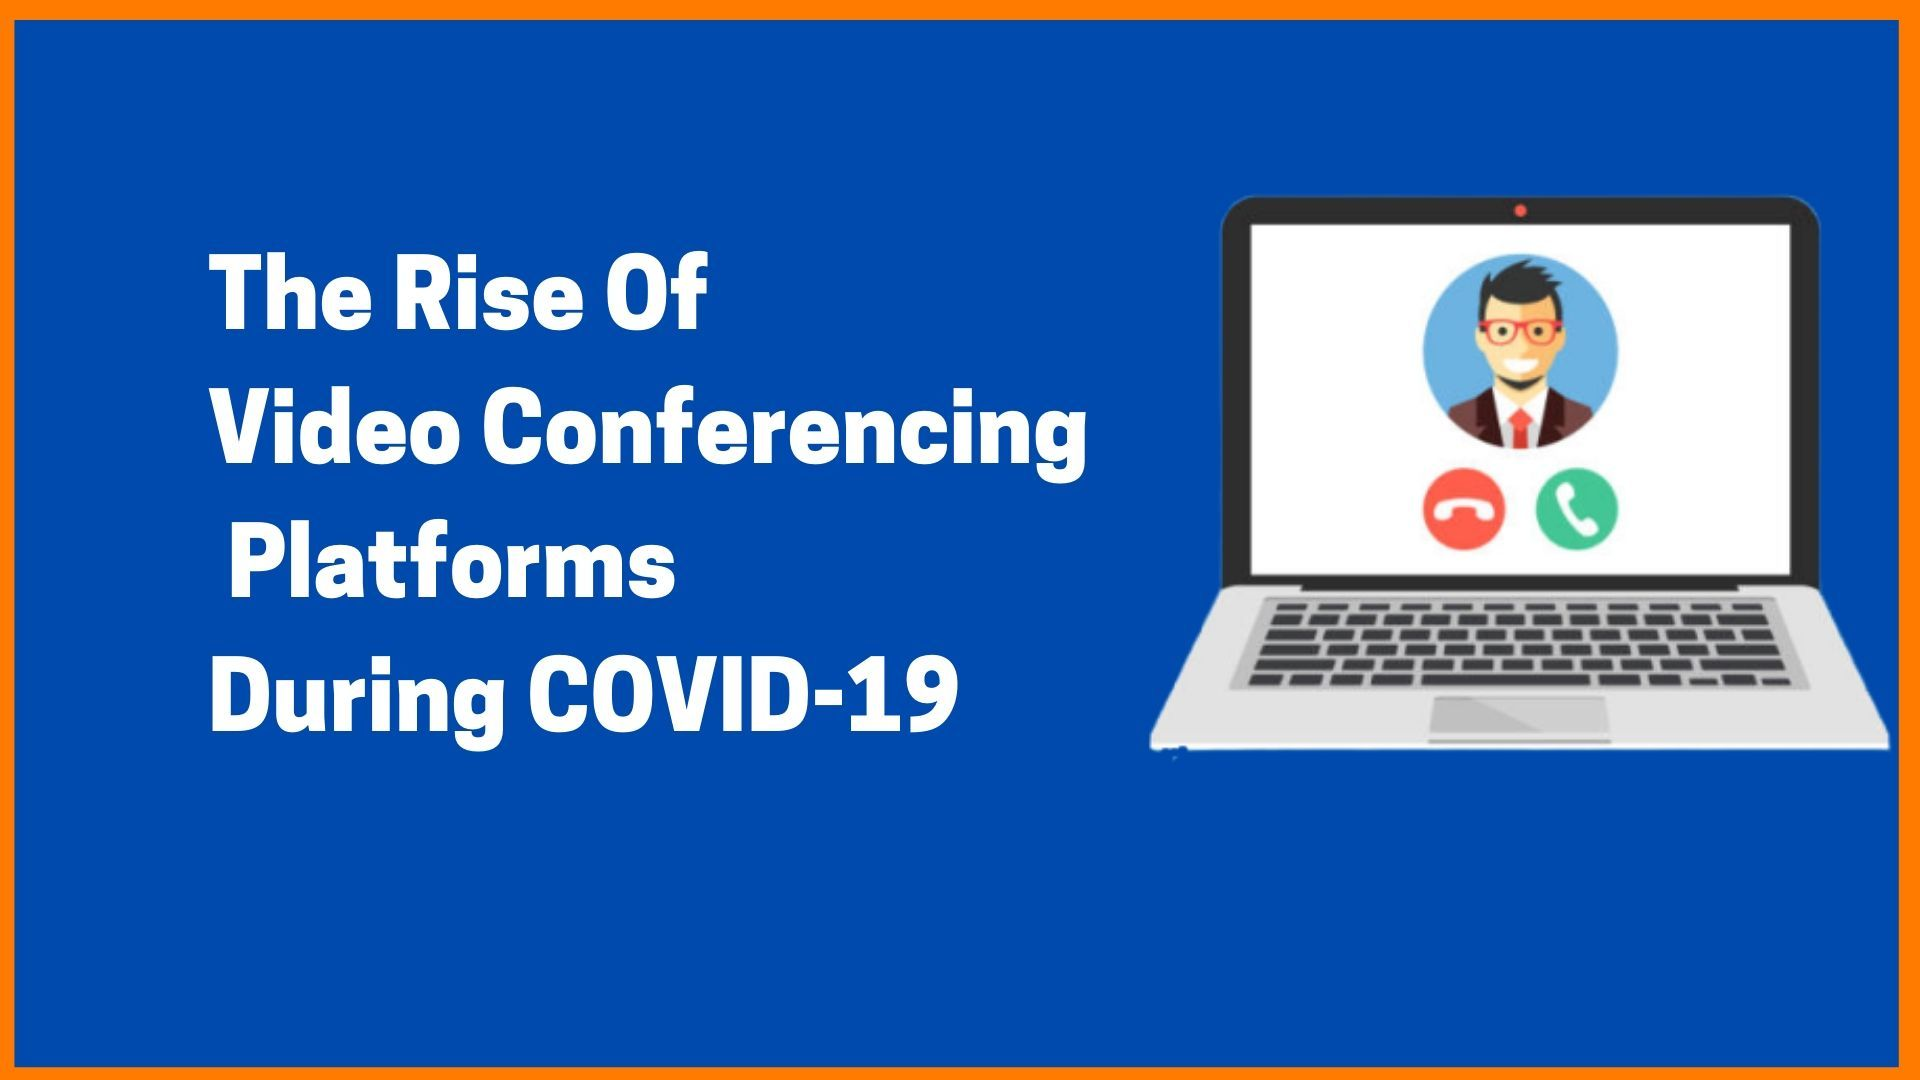 The Rise Of Video Conferencing Platforms During COVID-19